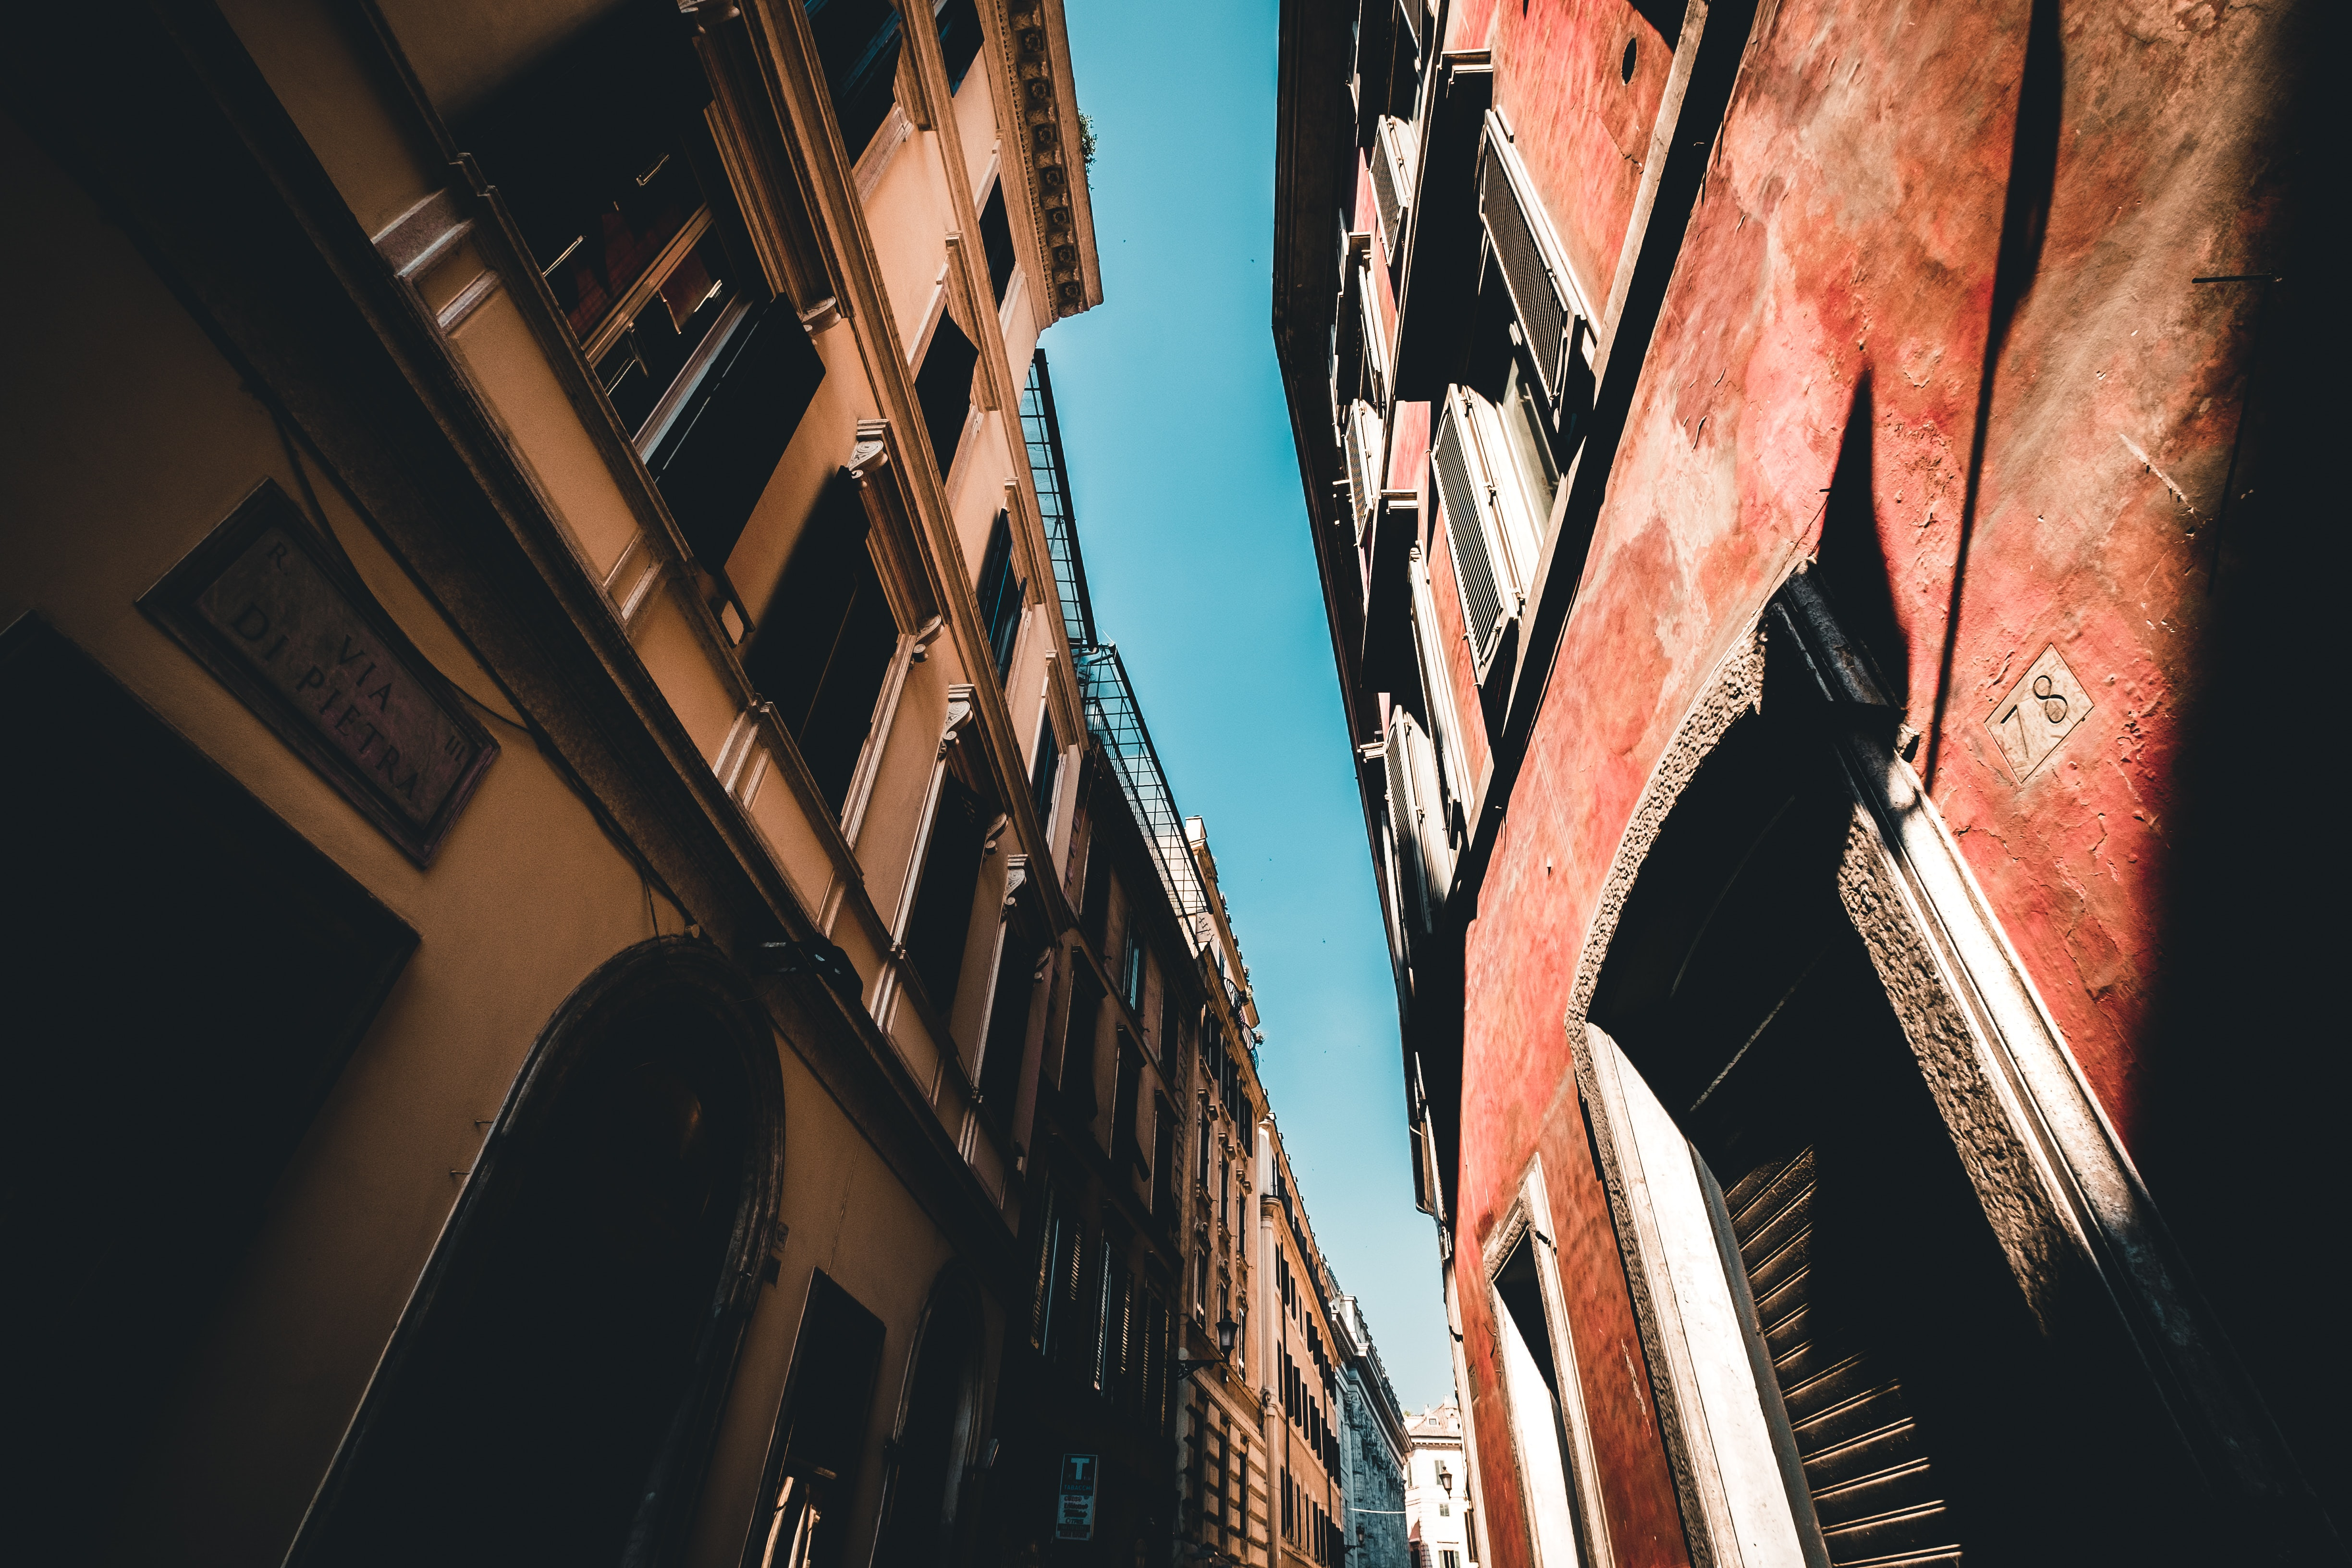 low angle photography of two buildings